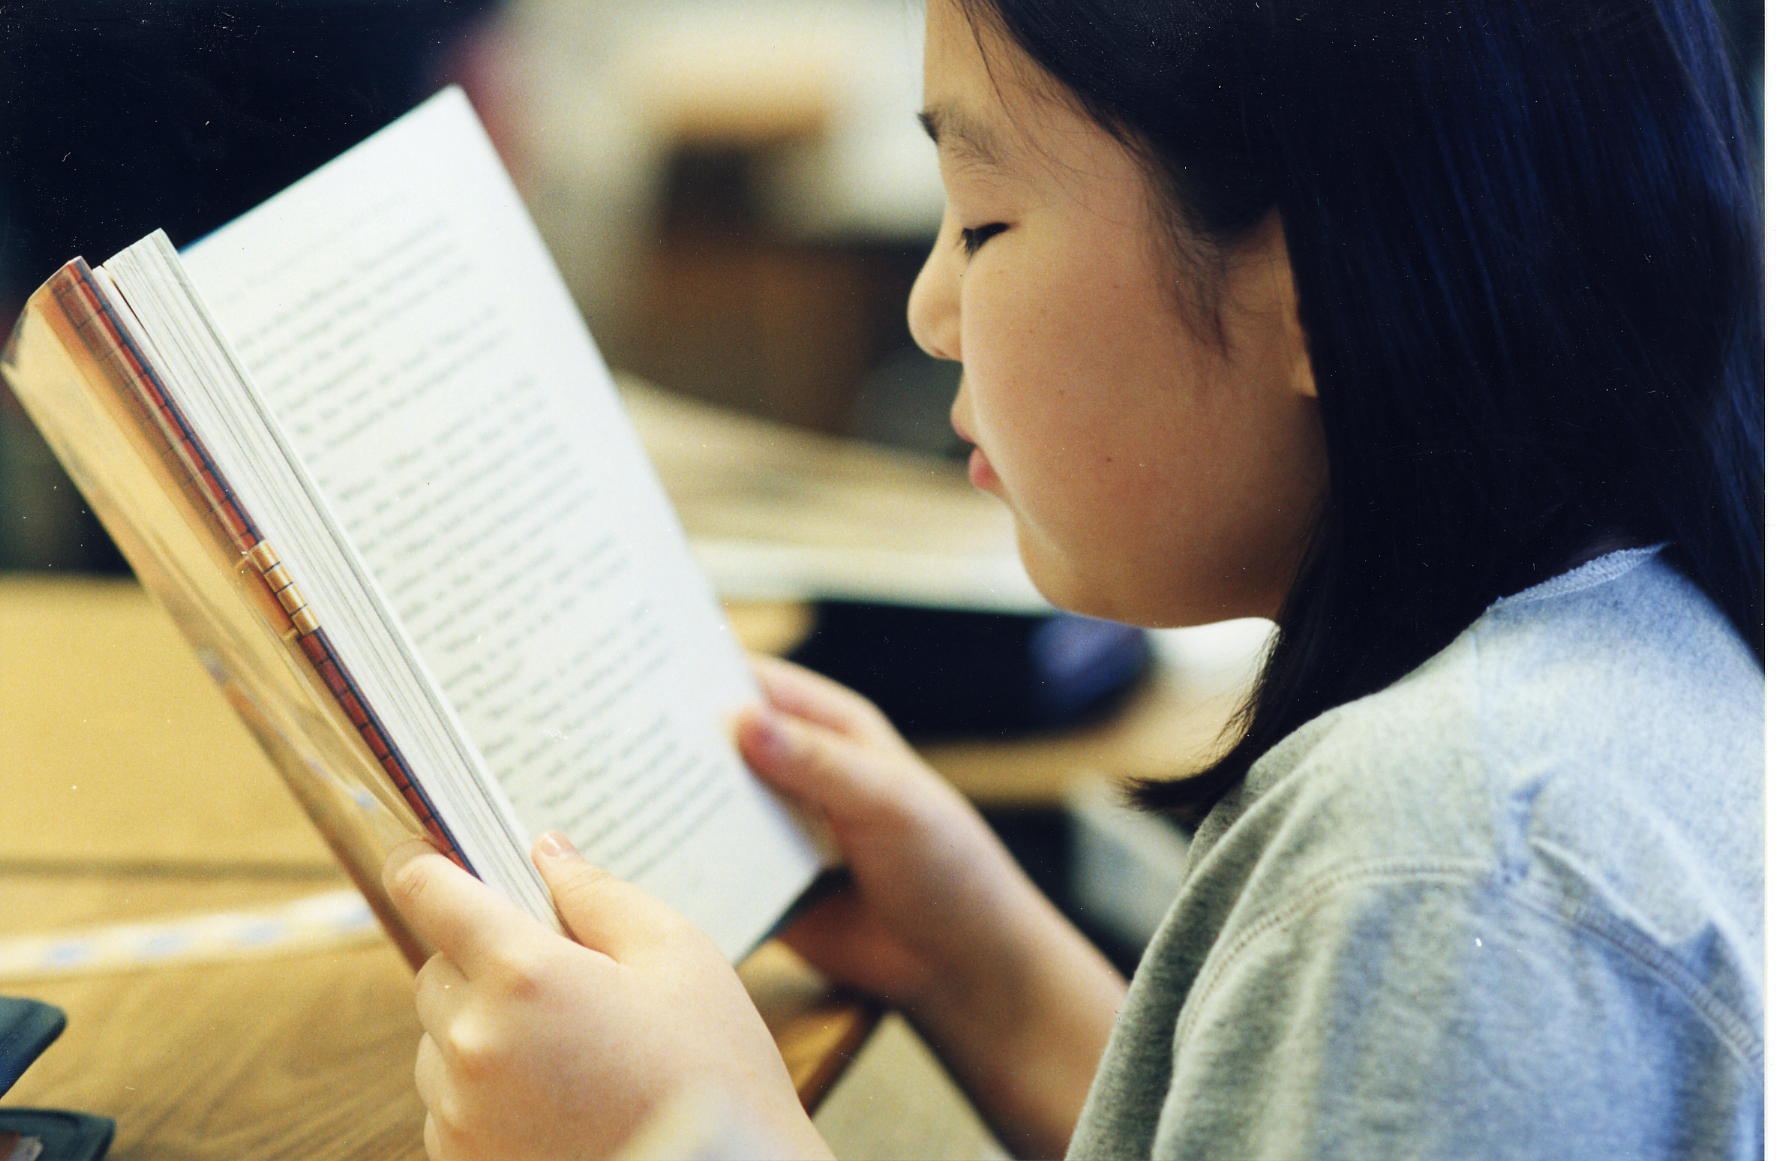 Study shows that reading fiction helps us read each other